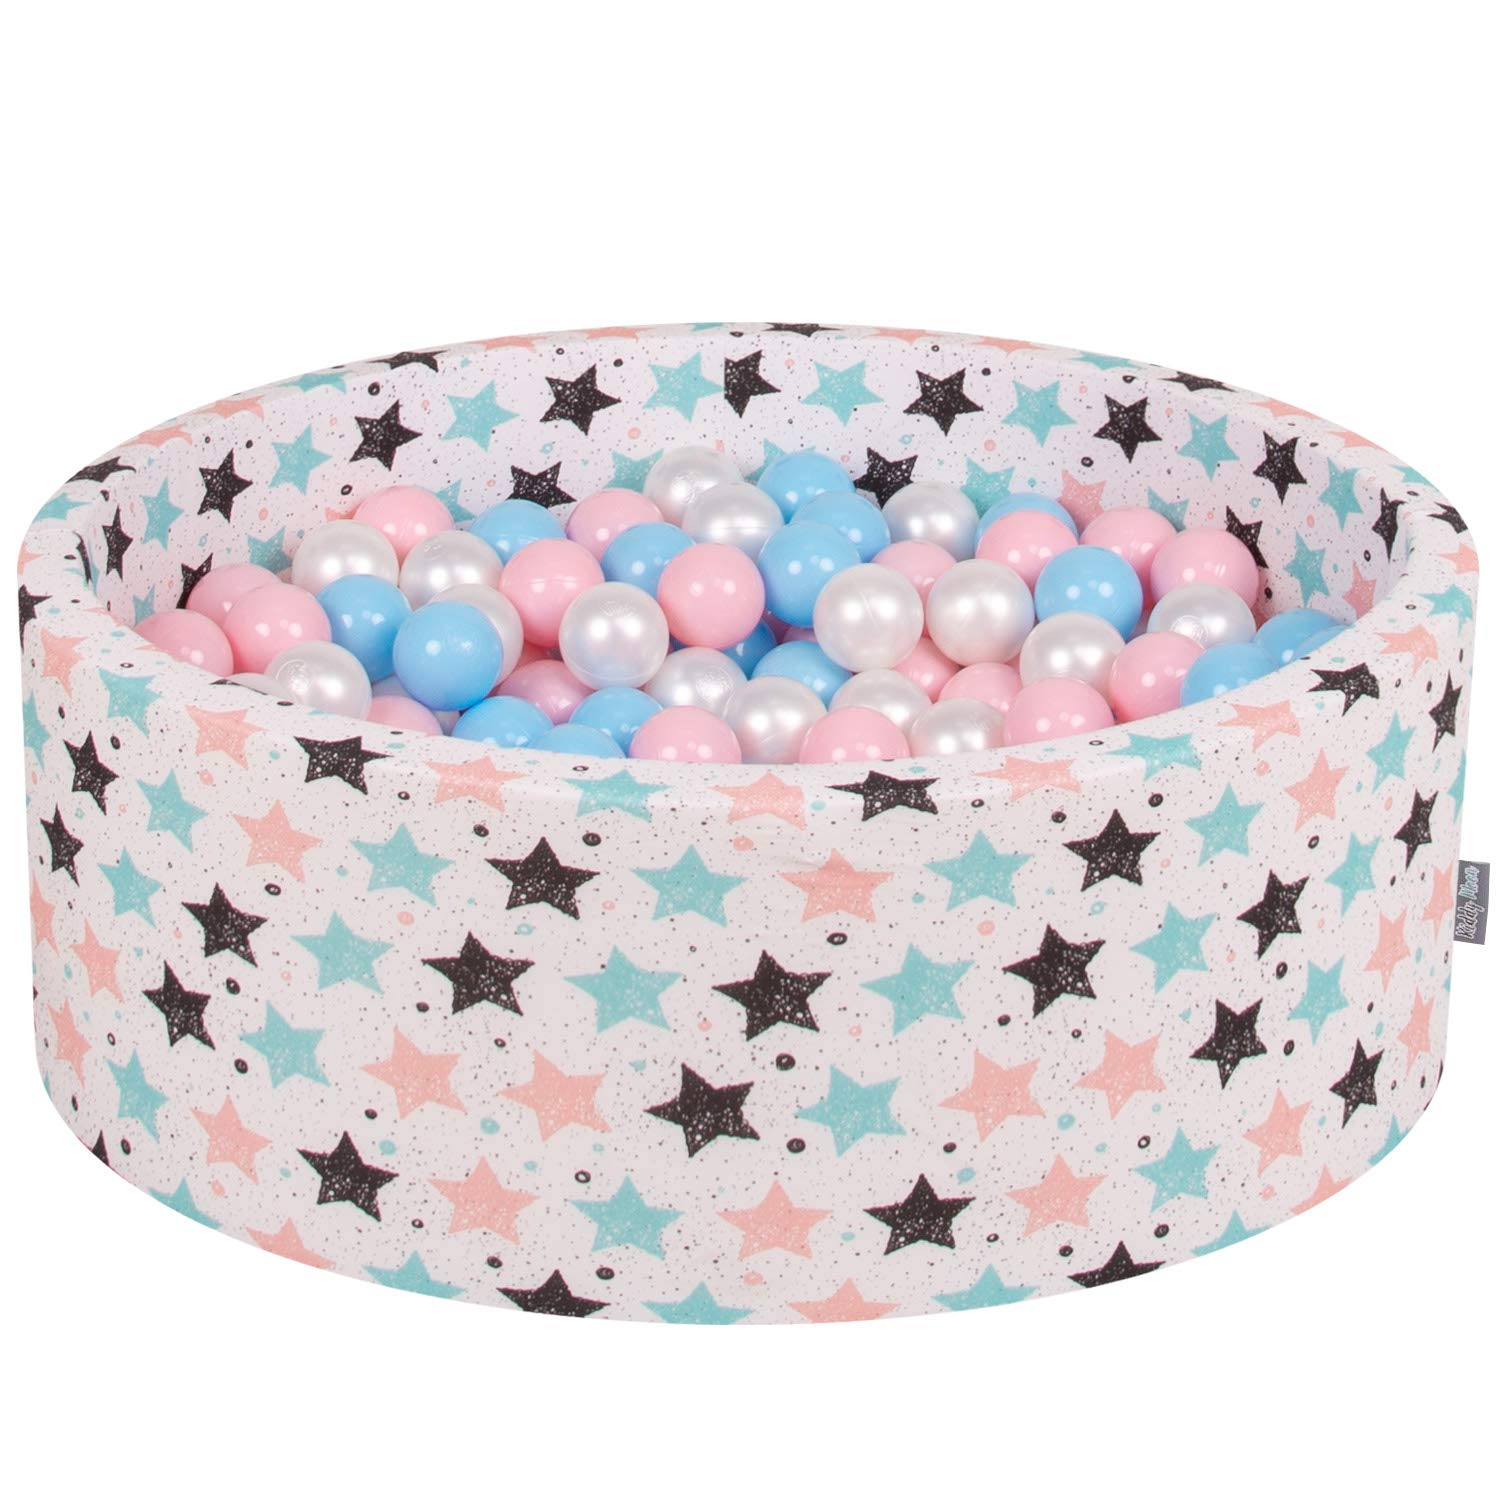 Light Beige baby bluee Light Pink Pearl 90x30cm 300 balls KiddyMoon 90X30cm 200 Balls ∅ 7Cm   2.75In Baby Foam Ball Pit Certified Made In EU, Grey Stars  Light Pink Pearl Transparent